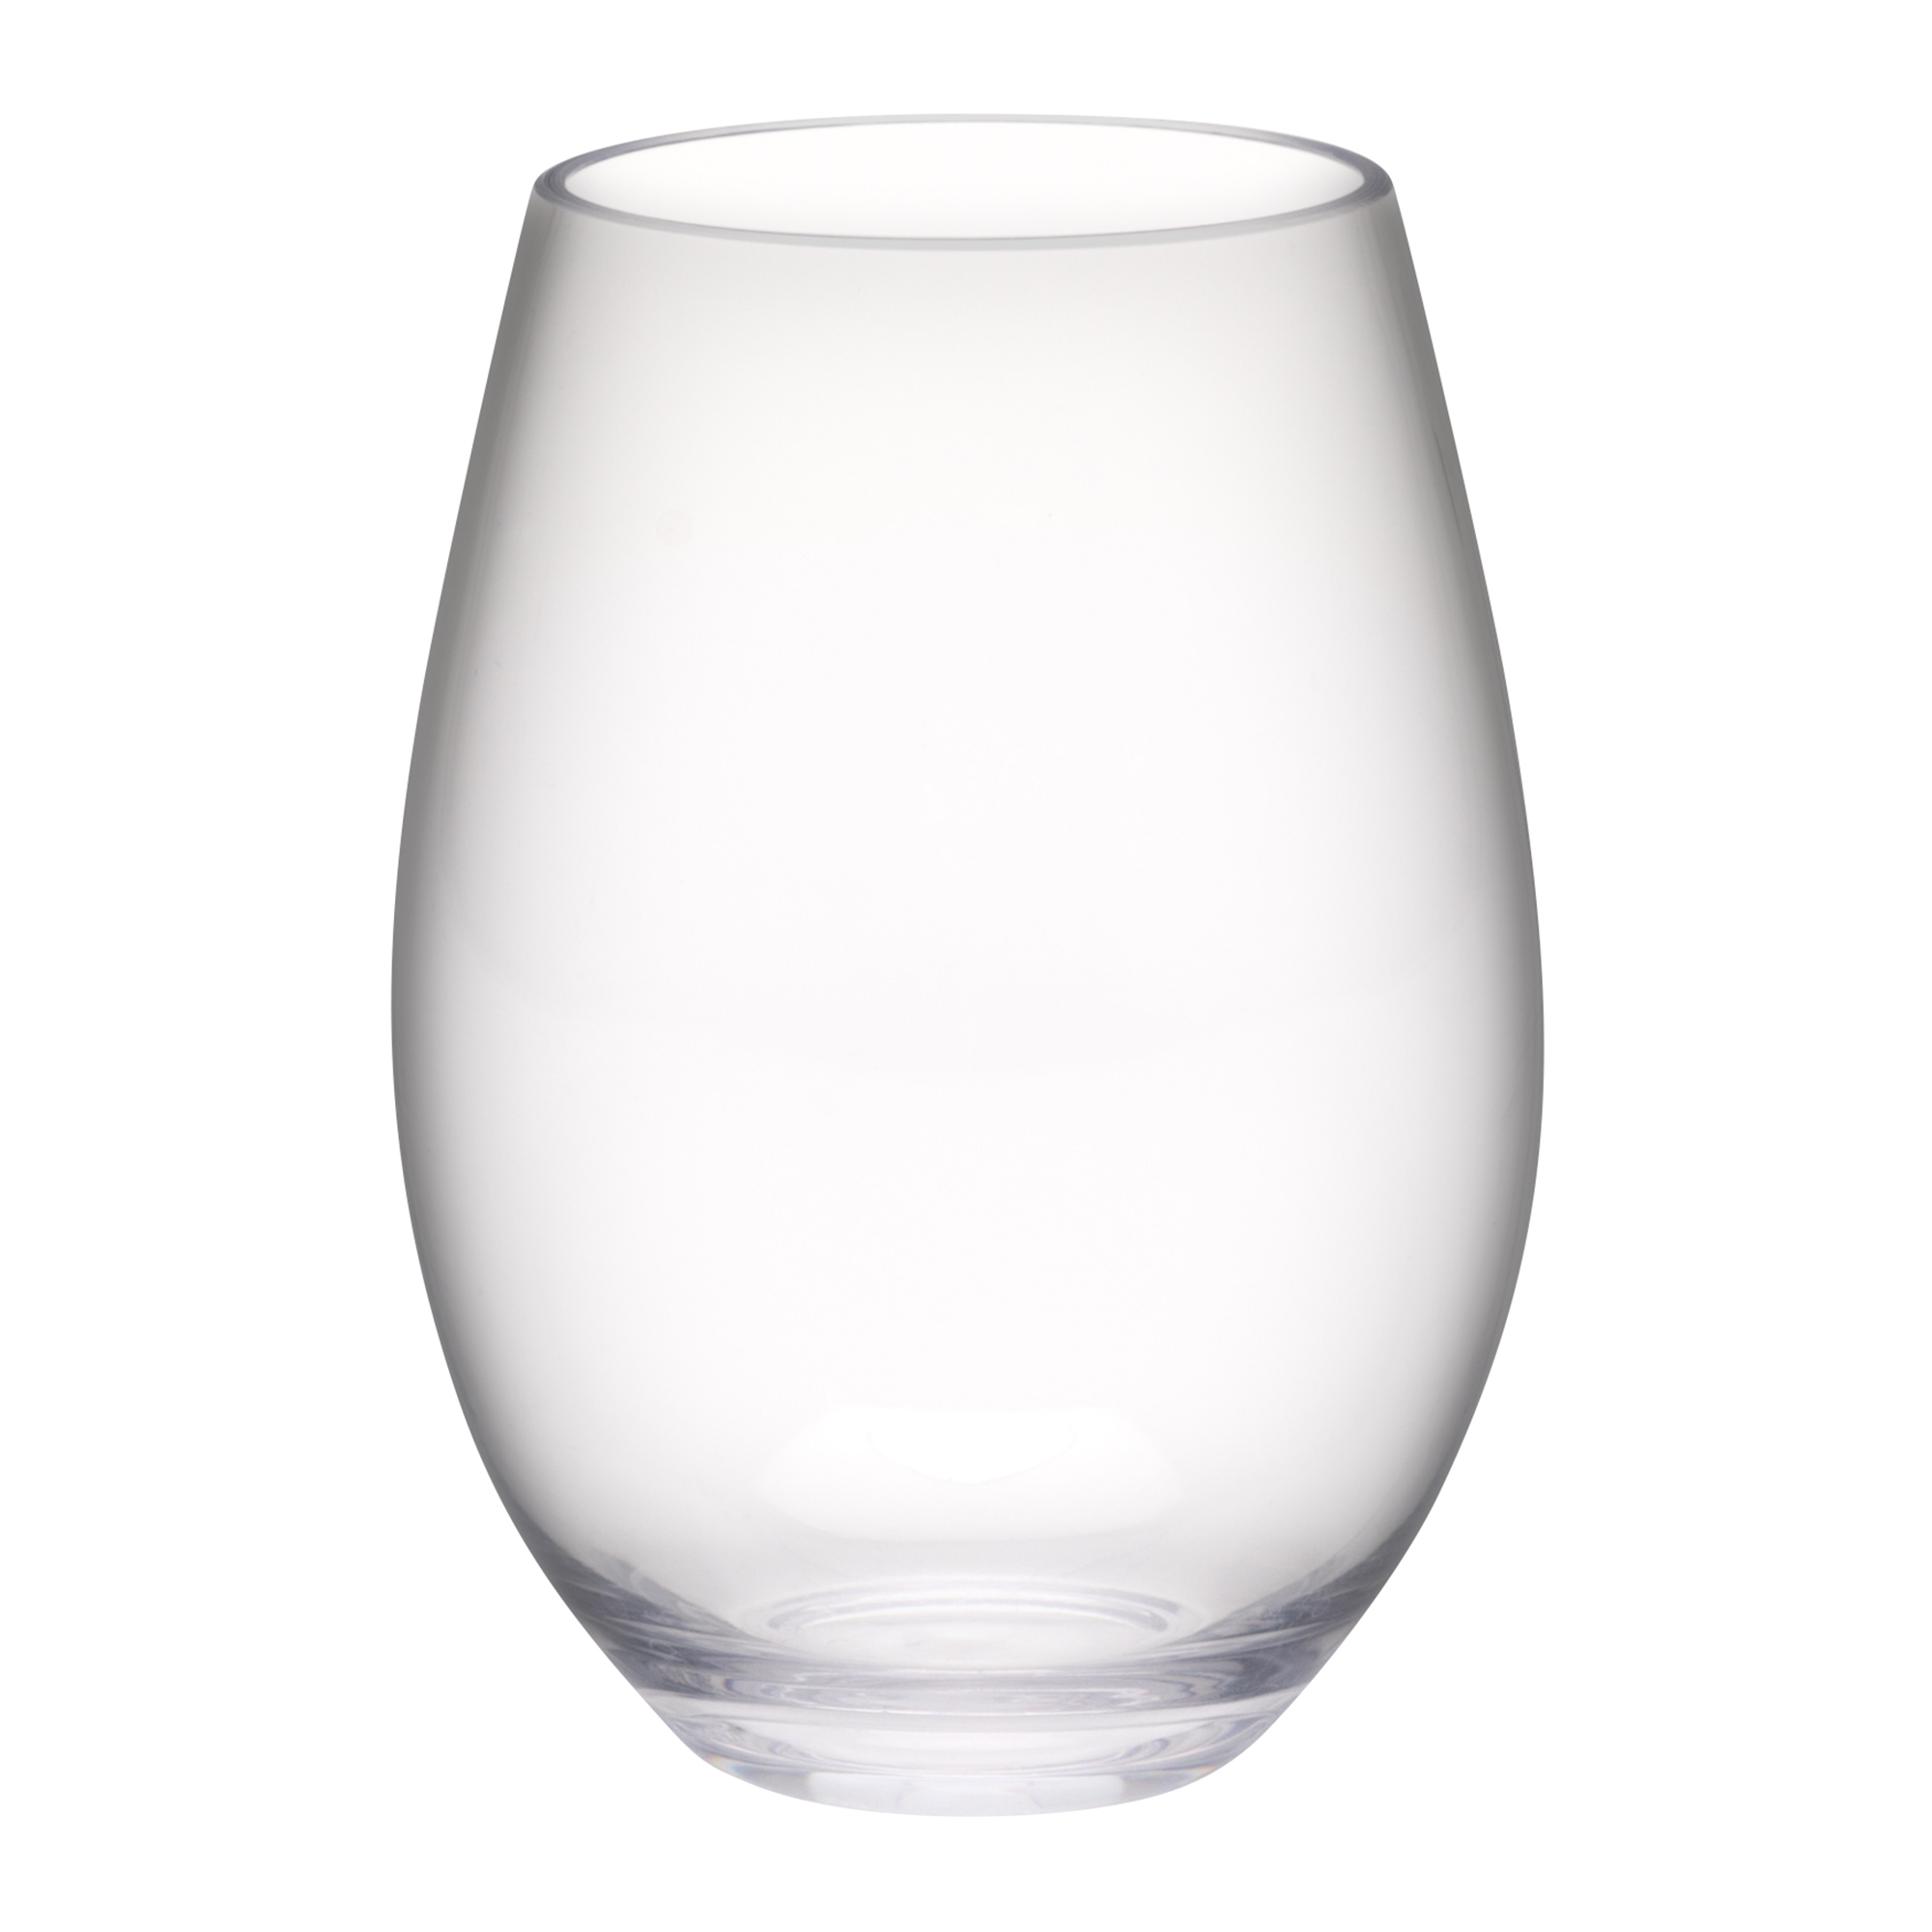 Trinity 20 ounce Plastic Wine Glasses, Clear, 2-piece set slideshow image 3